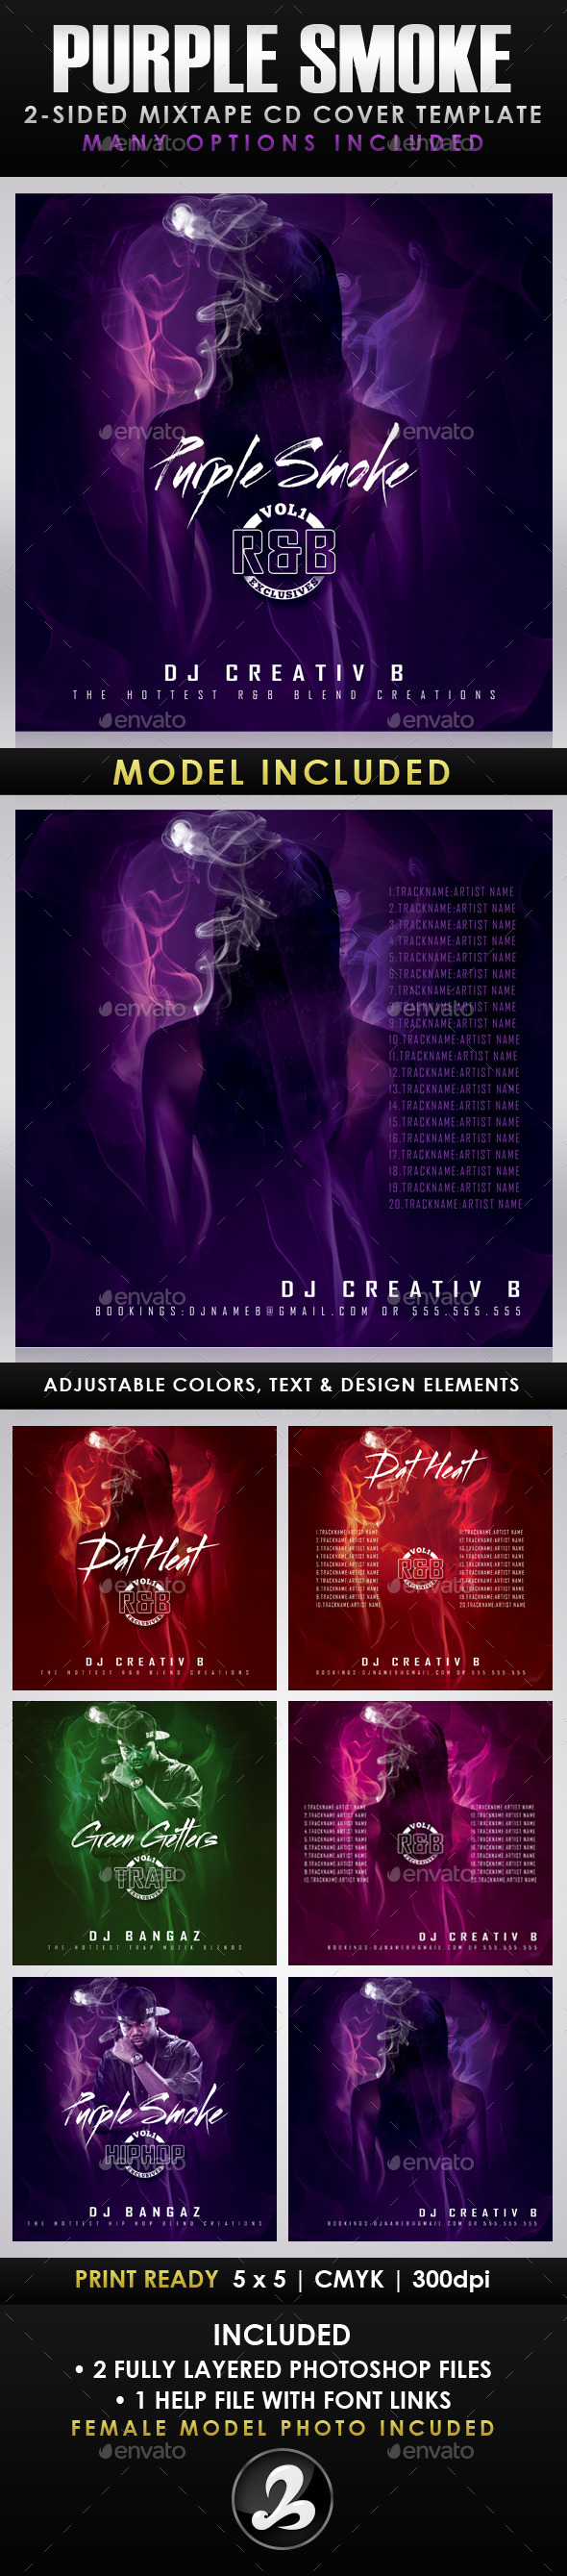 GraphicRiver Purple Smoke Mixtape CD Cover Templates 9470534